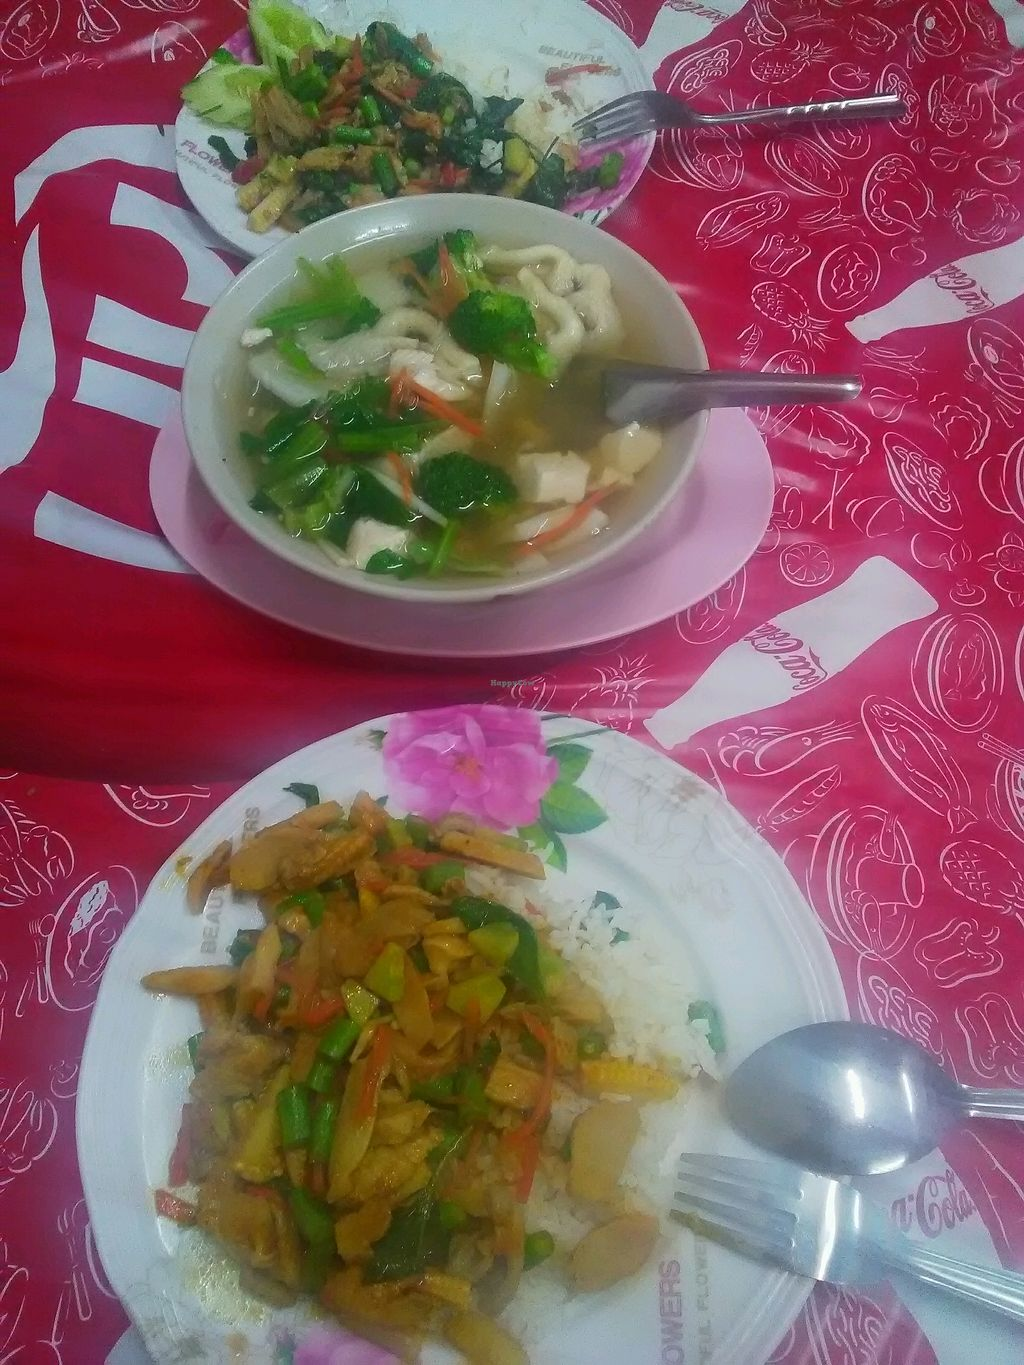 """Photo of Nian Yuen  by <a href=""""/members/profile/ozzita"""">ozzita</a> <br/>fried chilli paste vegetable rice, soup, fried vegetable in holy basil <br/> January 13, 2018  - <a href='/contact/abuse/image/61100/345979'>Report</a>"""